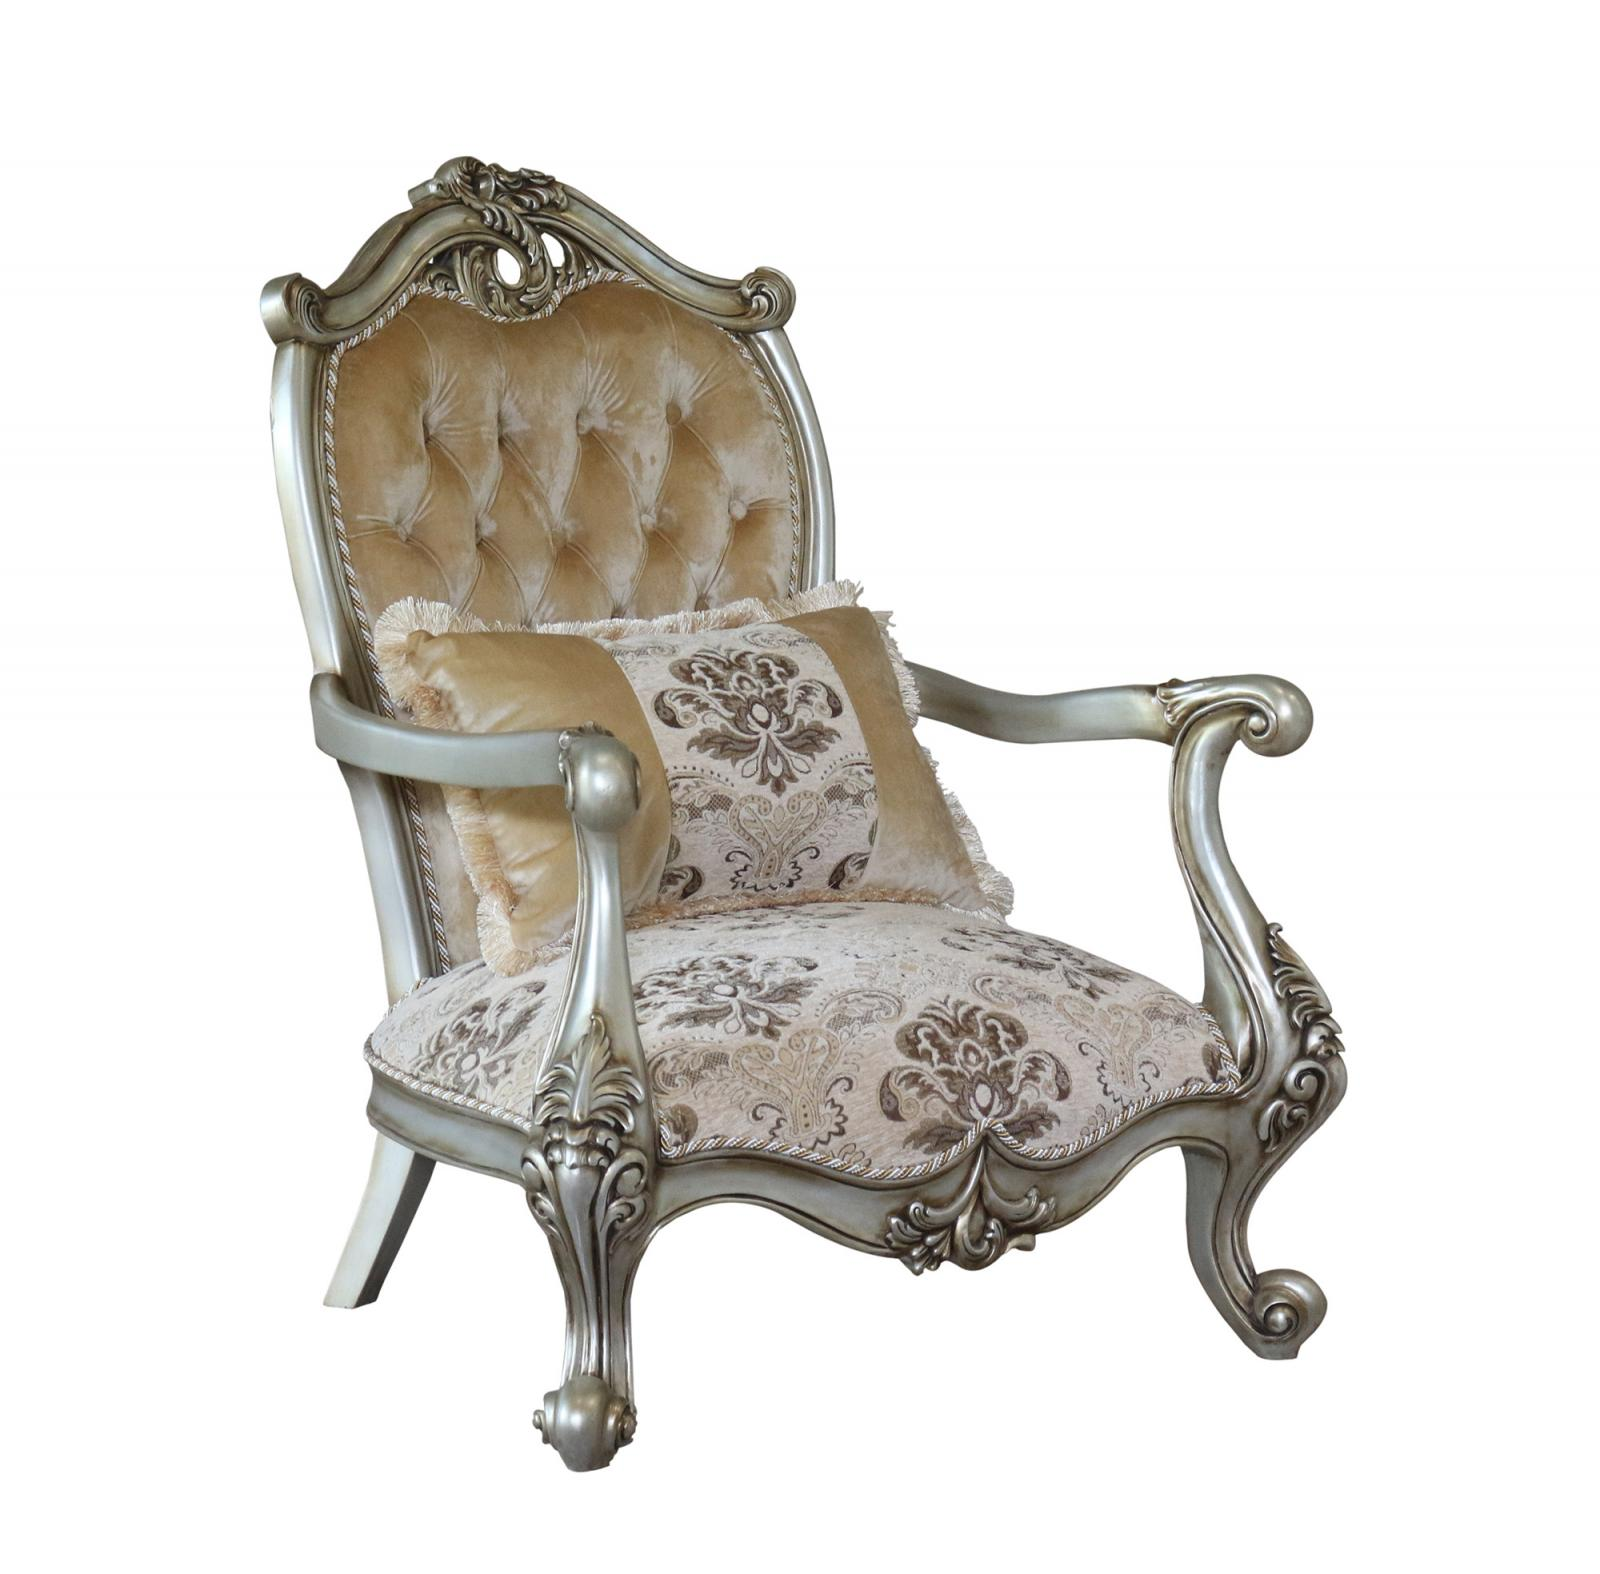 Classic  Traditional Silver  Antique Wood  Solid Hardwood and Fabric Arm Chair Set EUROPEAN FURNITURE 38066-C-Set-2